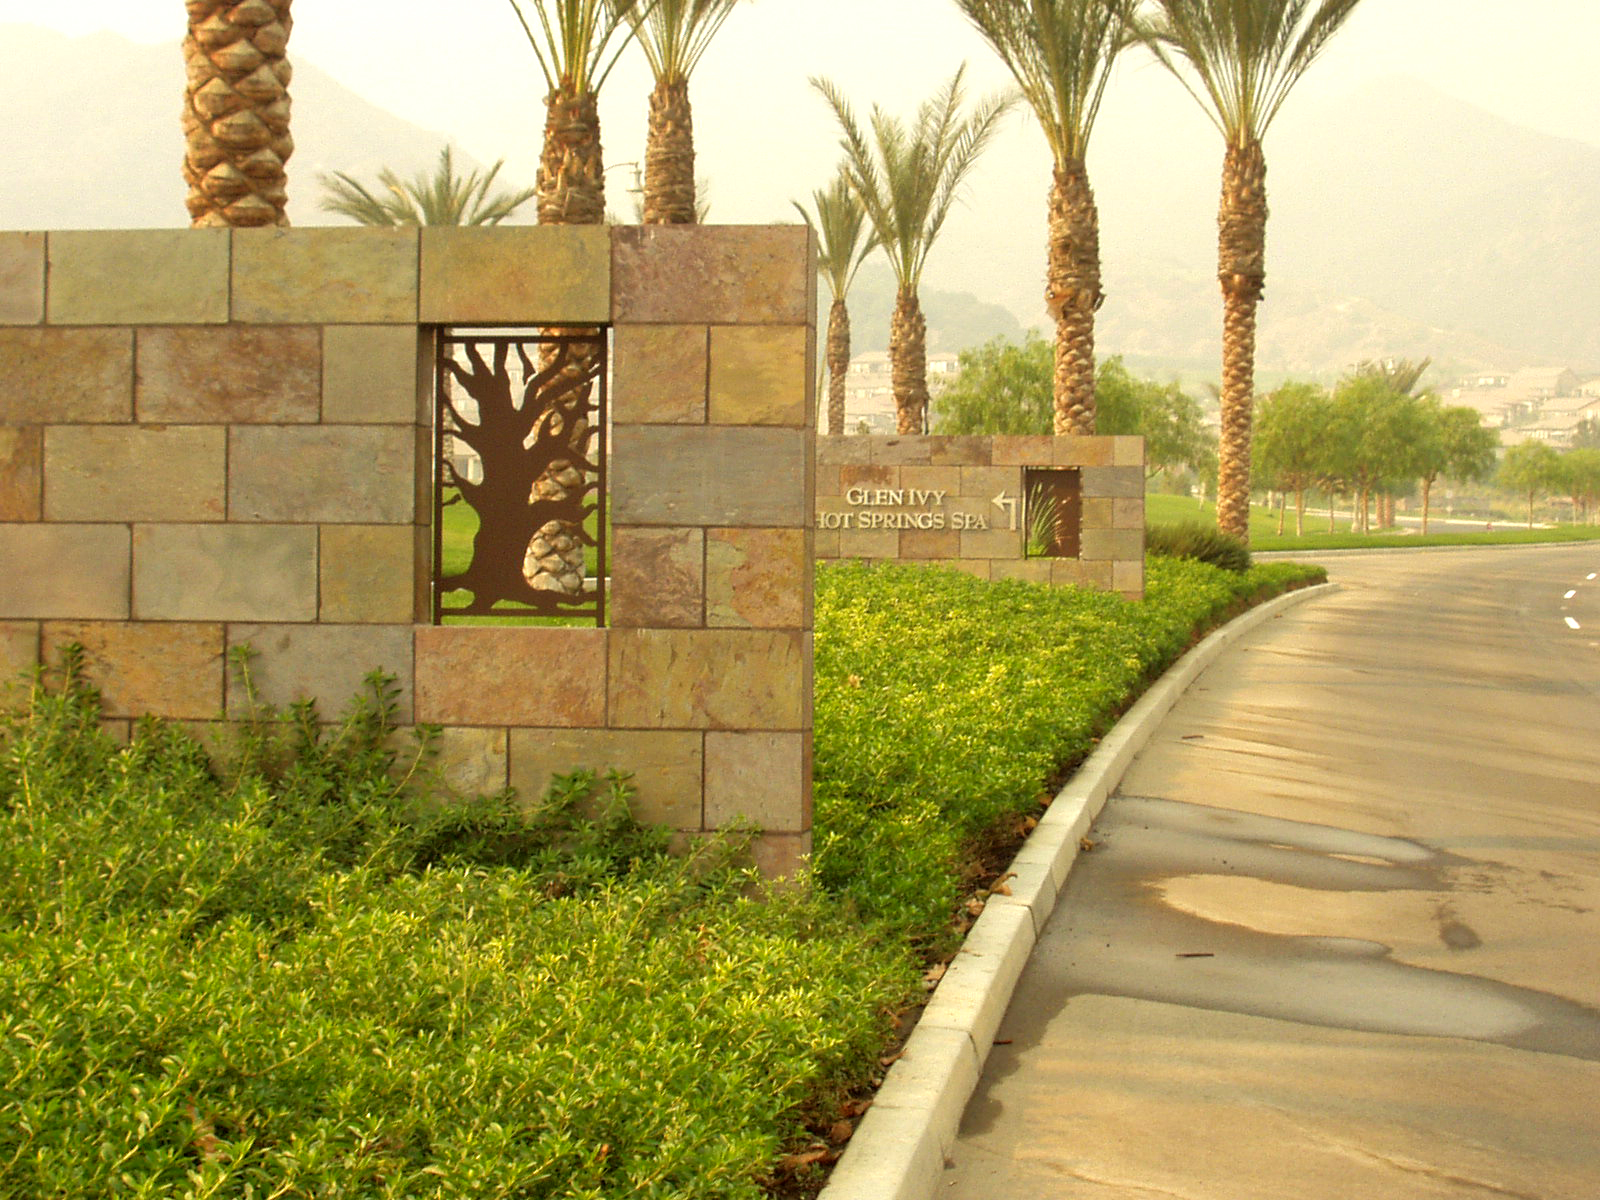 glen ivy panels